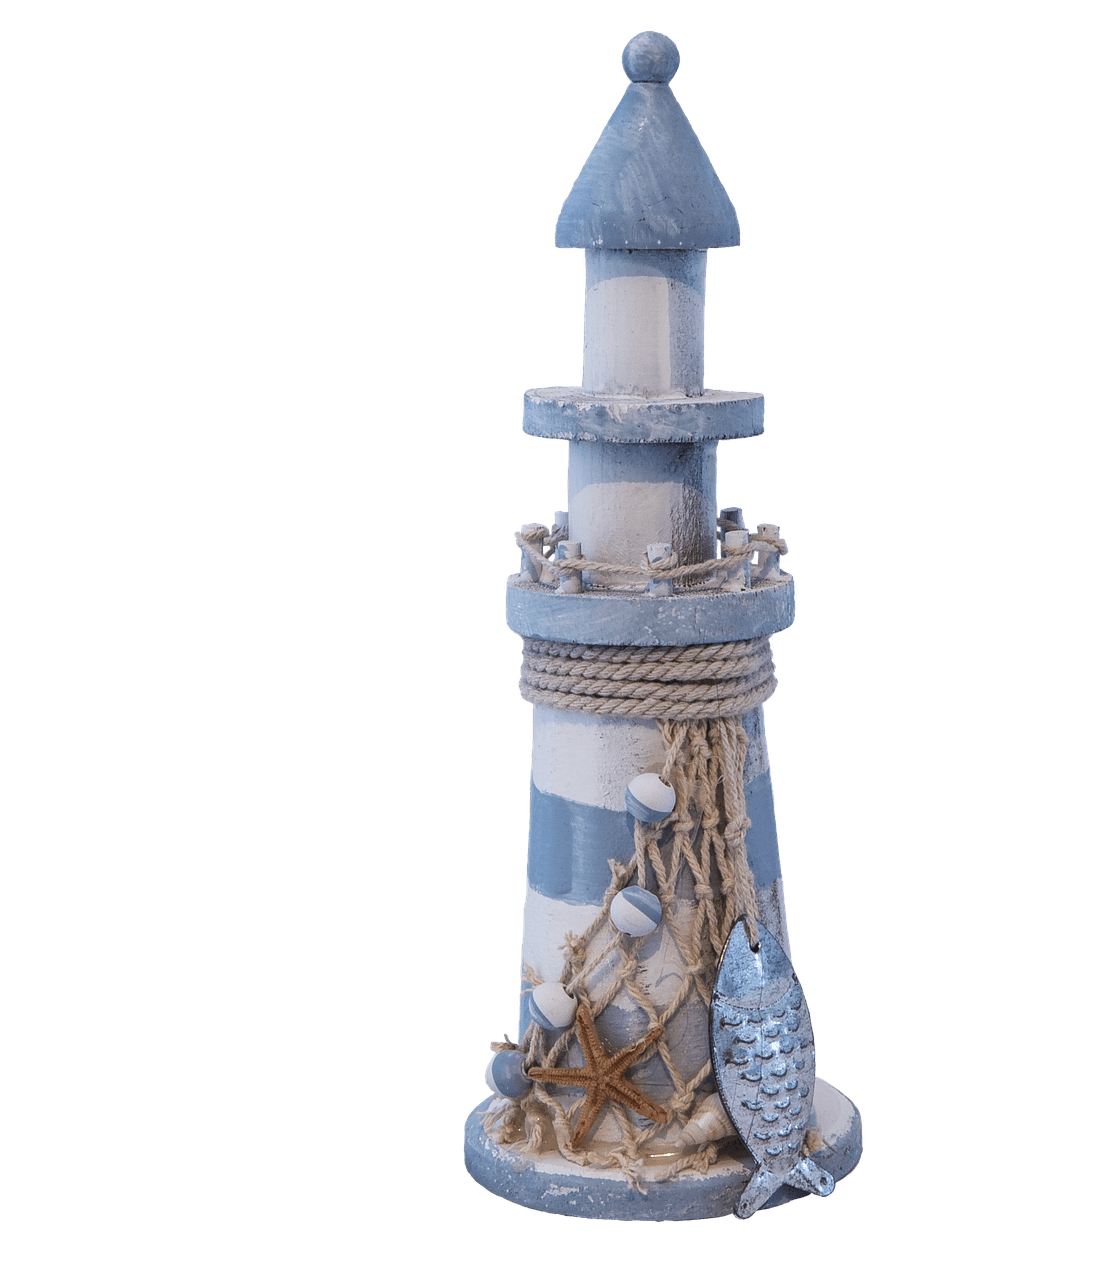 Figurine transparent png stickpng. Square clipart lighthouse